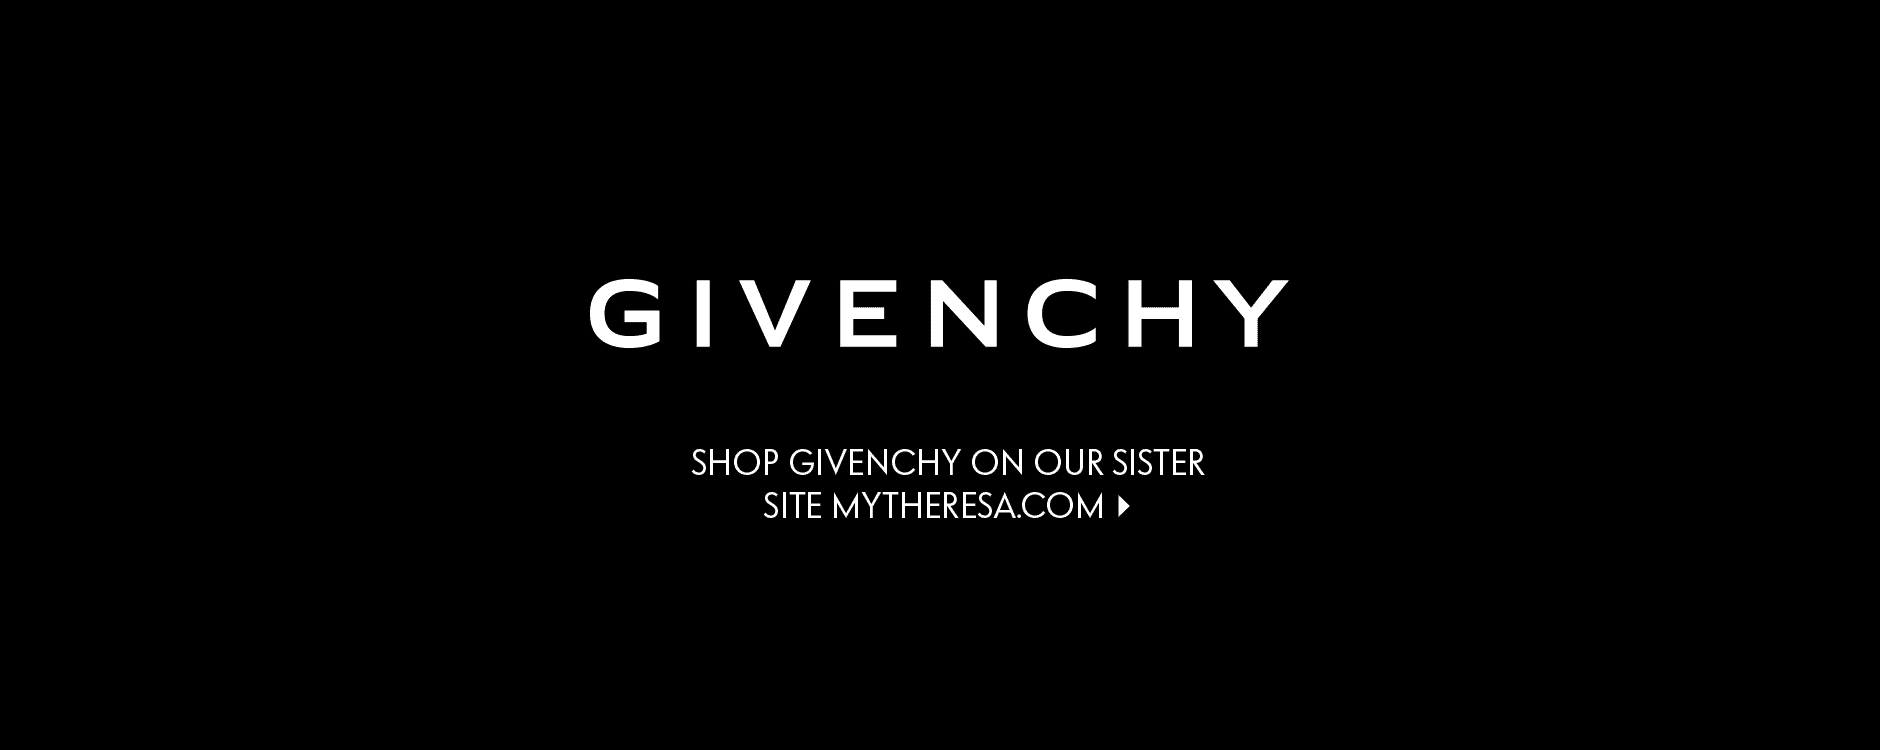 Givenchy: Shop Givenchy on our sister site MyTheresa.com